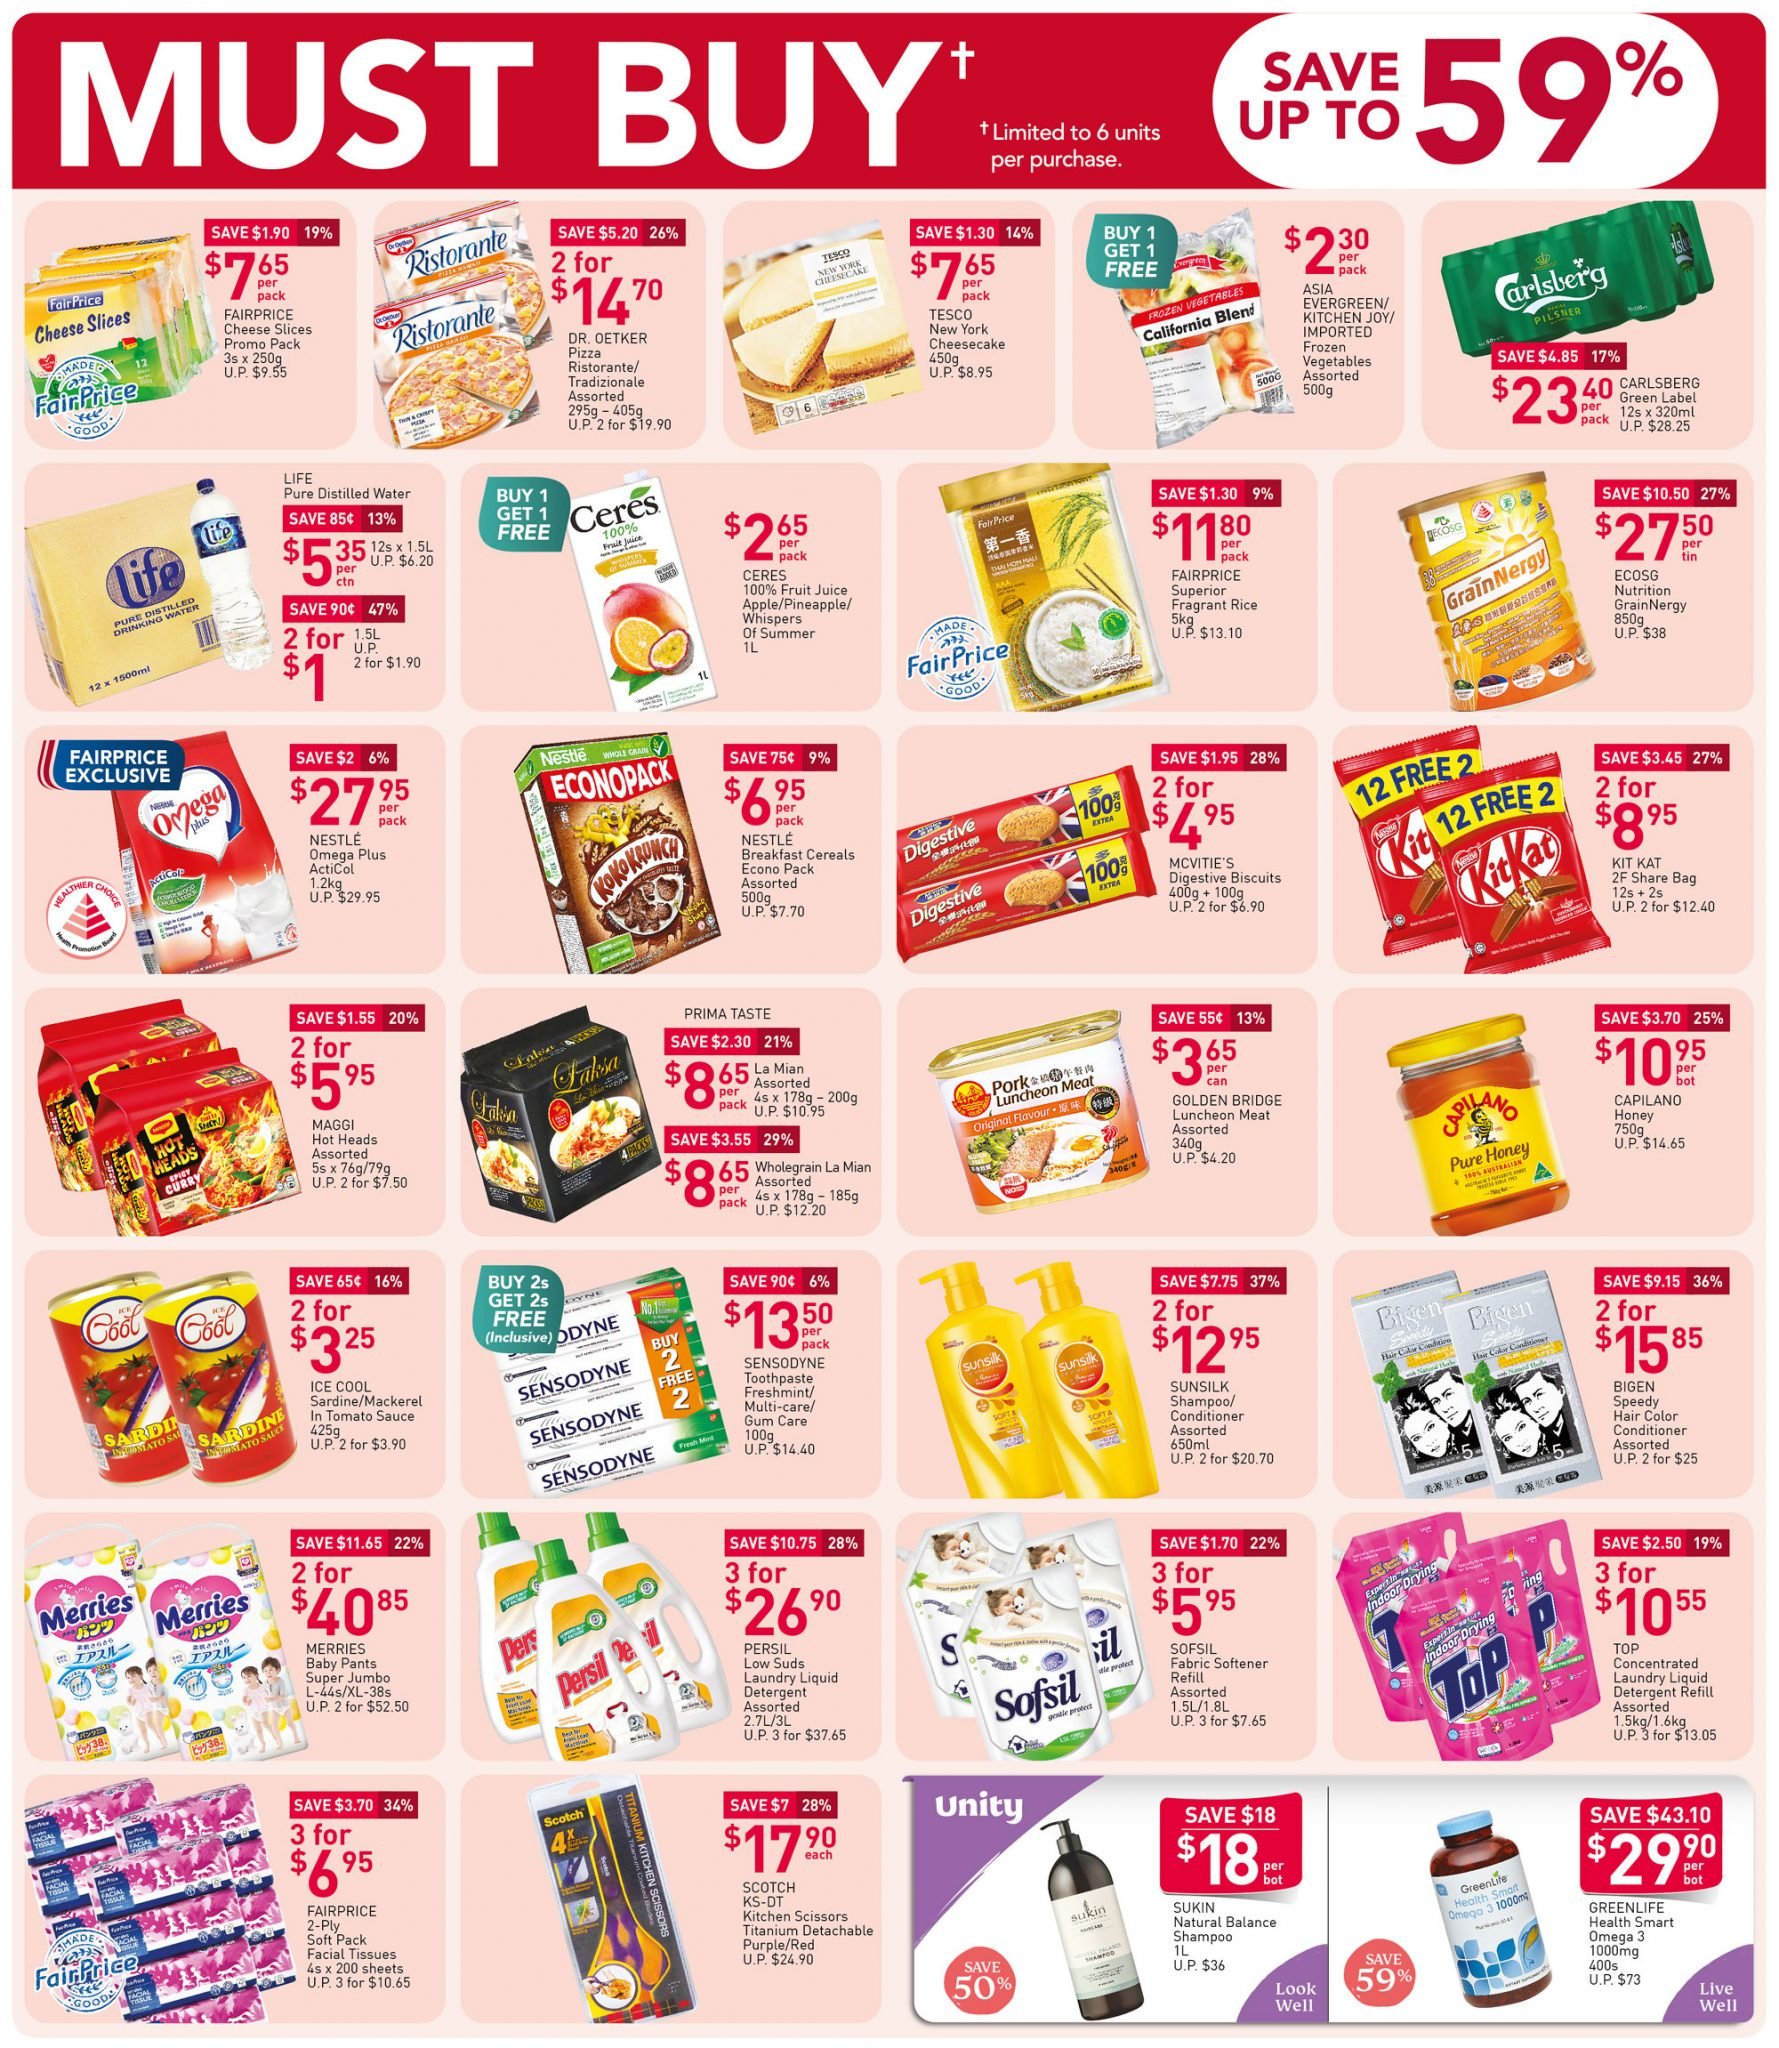 FairPrice must-buy items from now till 18 November 2020